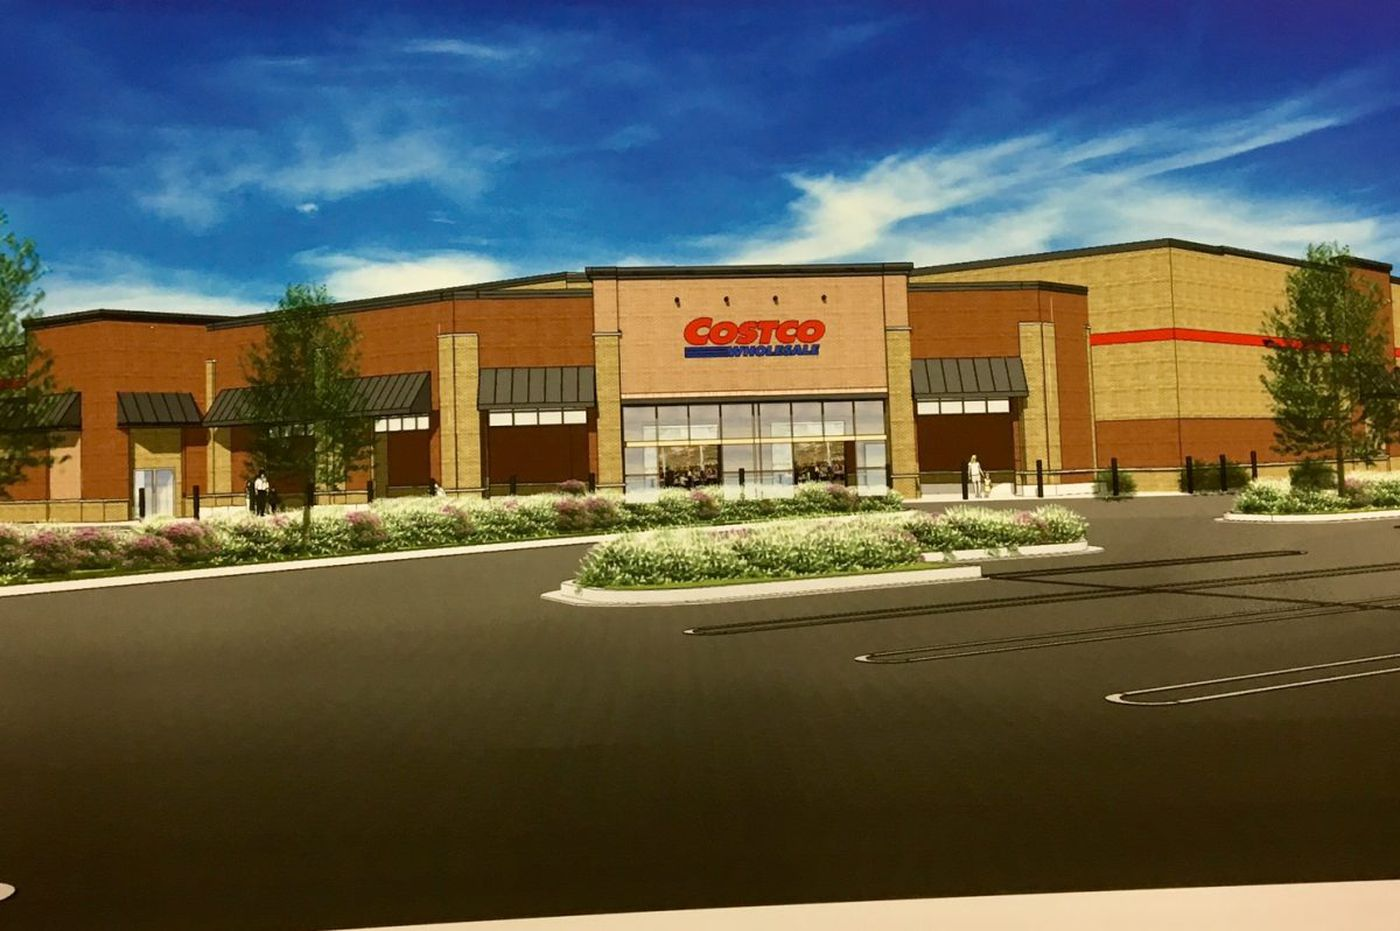 Disputed Costco store OKd in Cherry Hill; a legal challenge looms